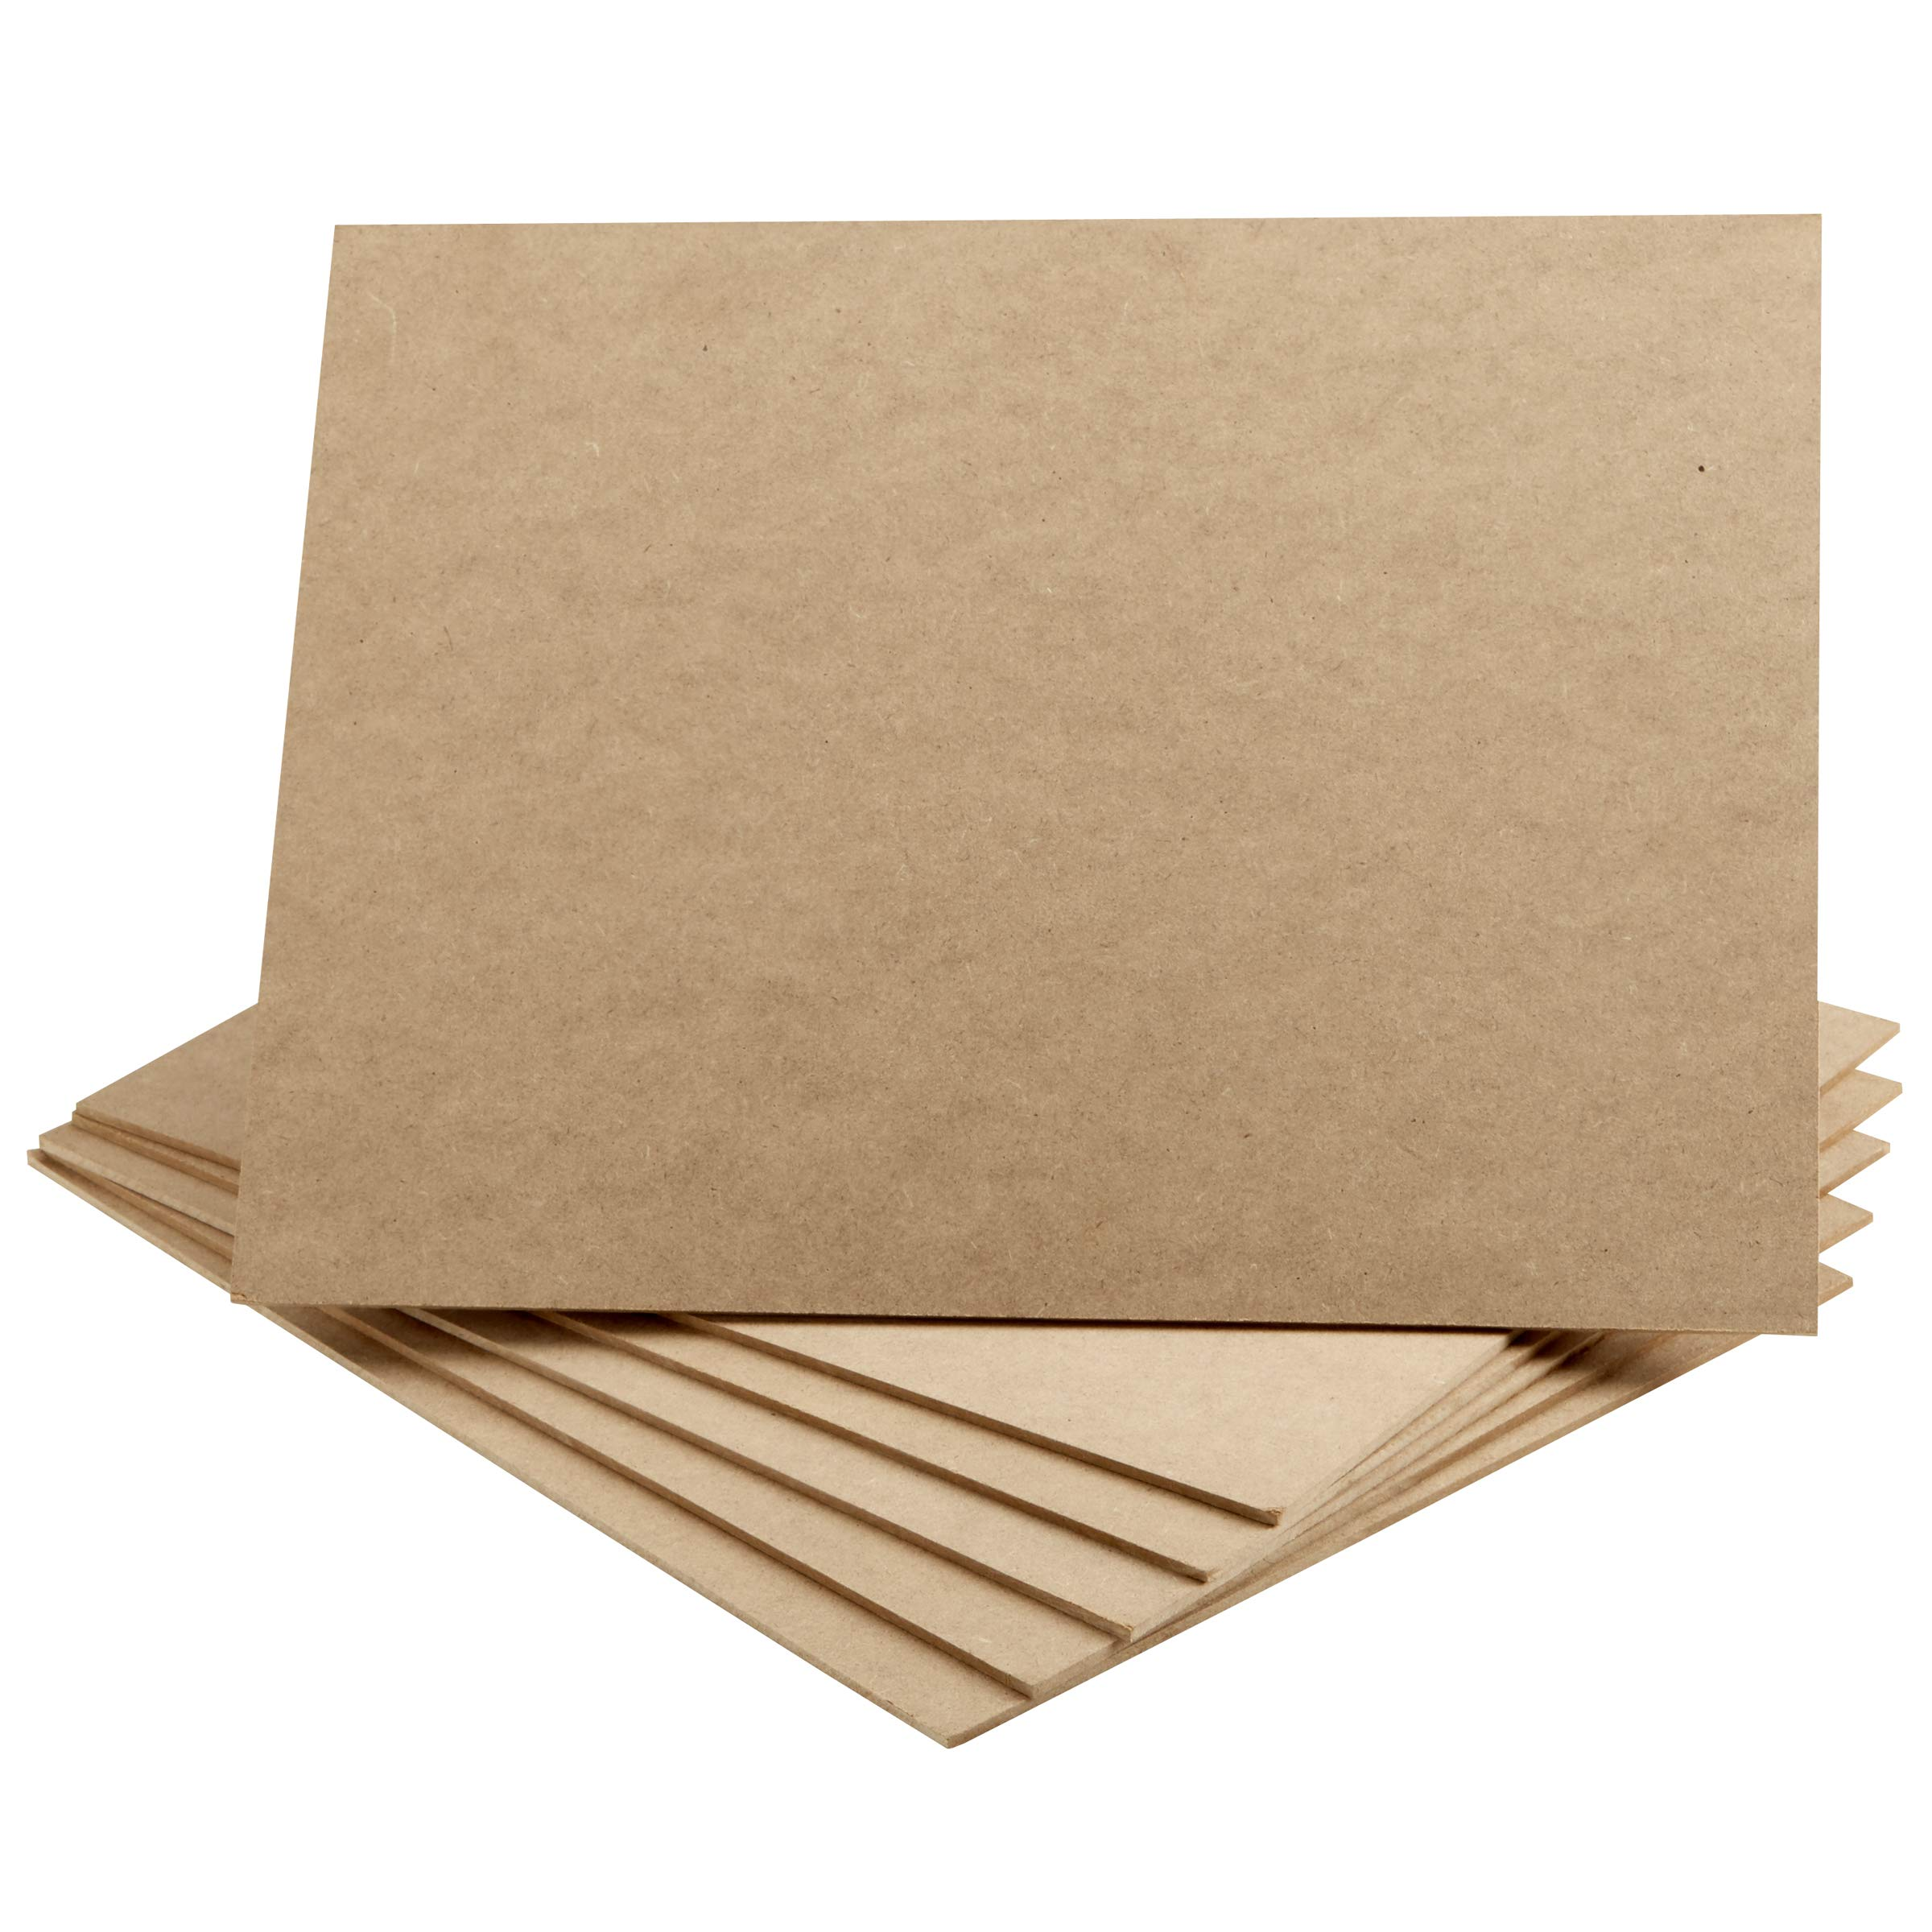 Artlicious - 11x14 Hardboard 6 Pack - Great Alternative to Canvas Panel Boards by Artlicious